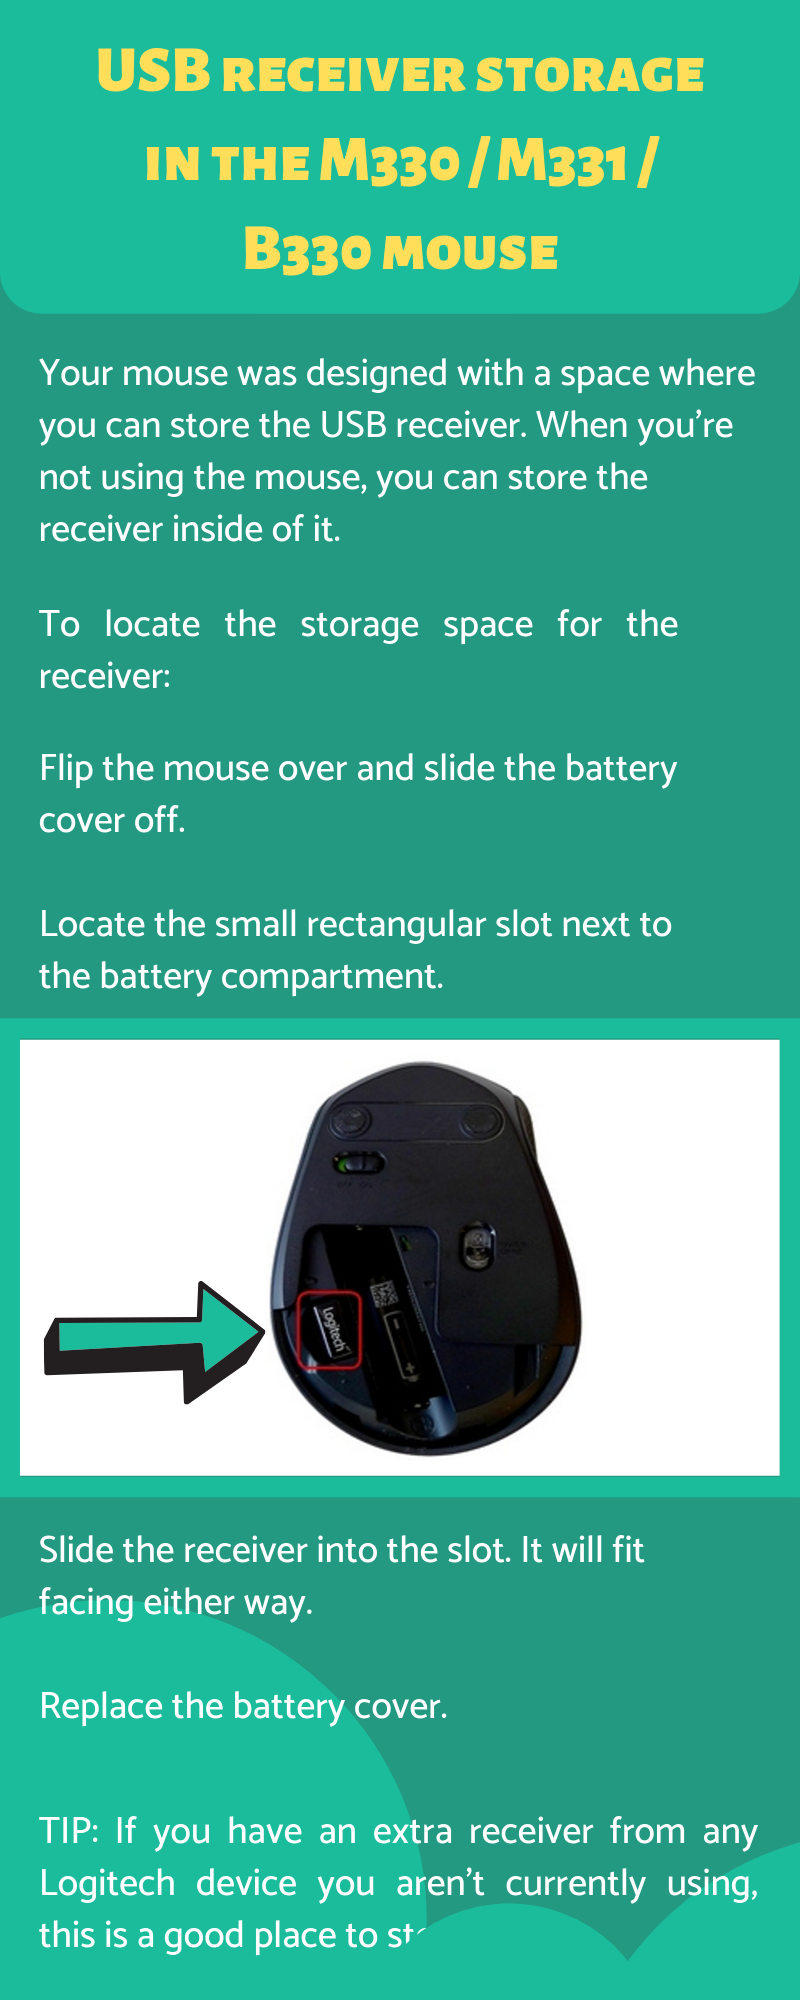 _USB receiver storage in the M330 _ M331 _ B330 mouse